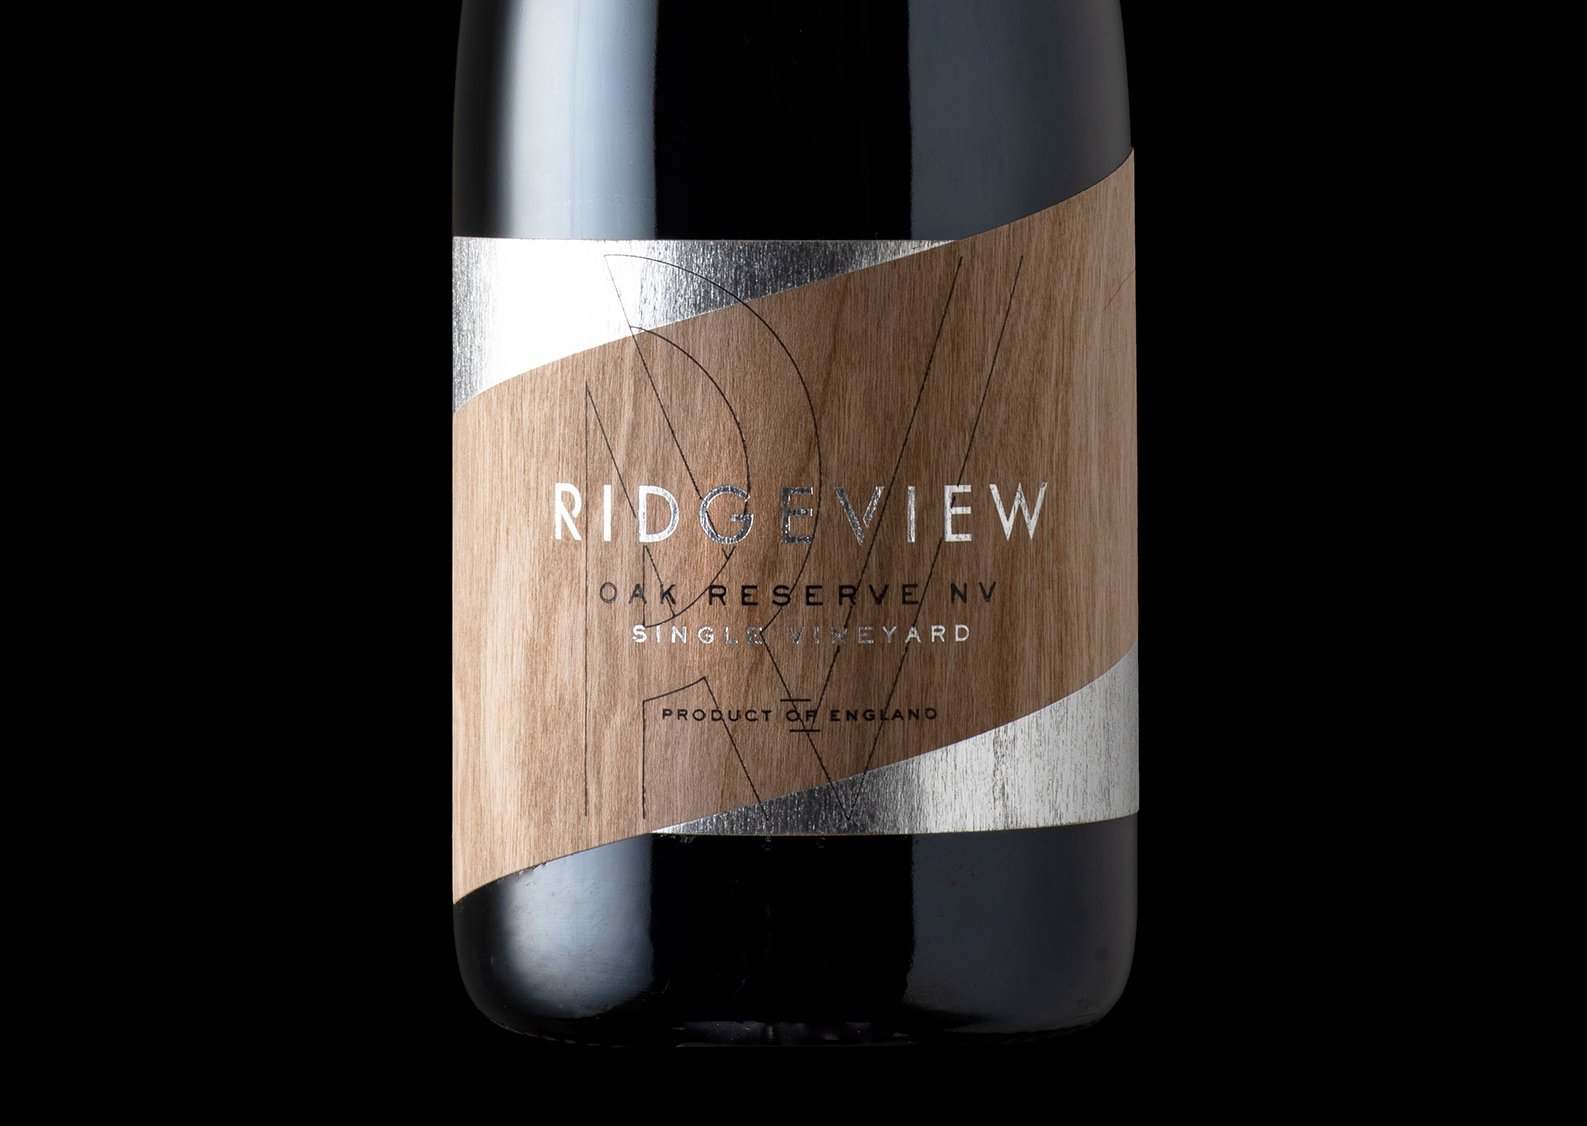 Ridgeview Oak Reserve Limited Release Sparkling Wine Packaging Design